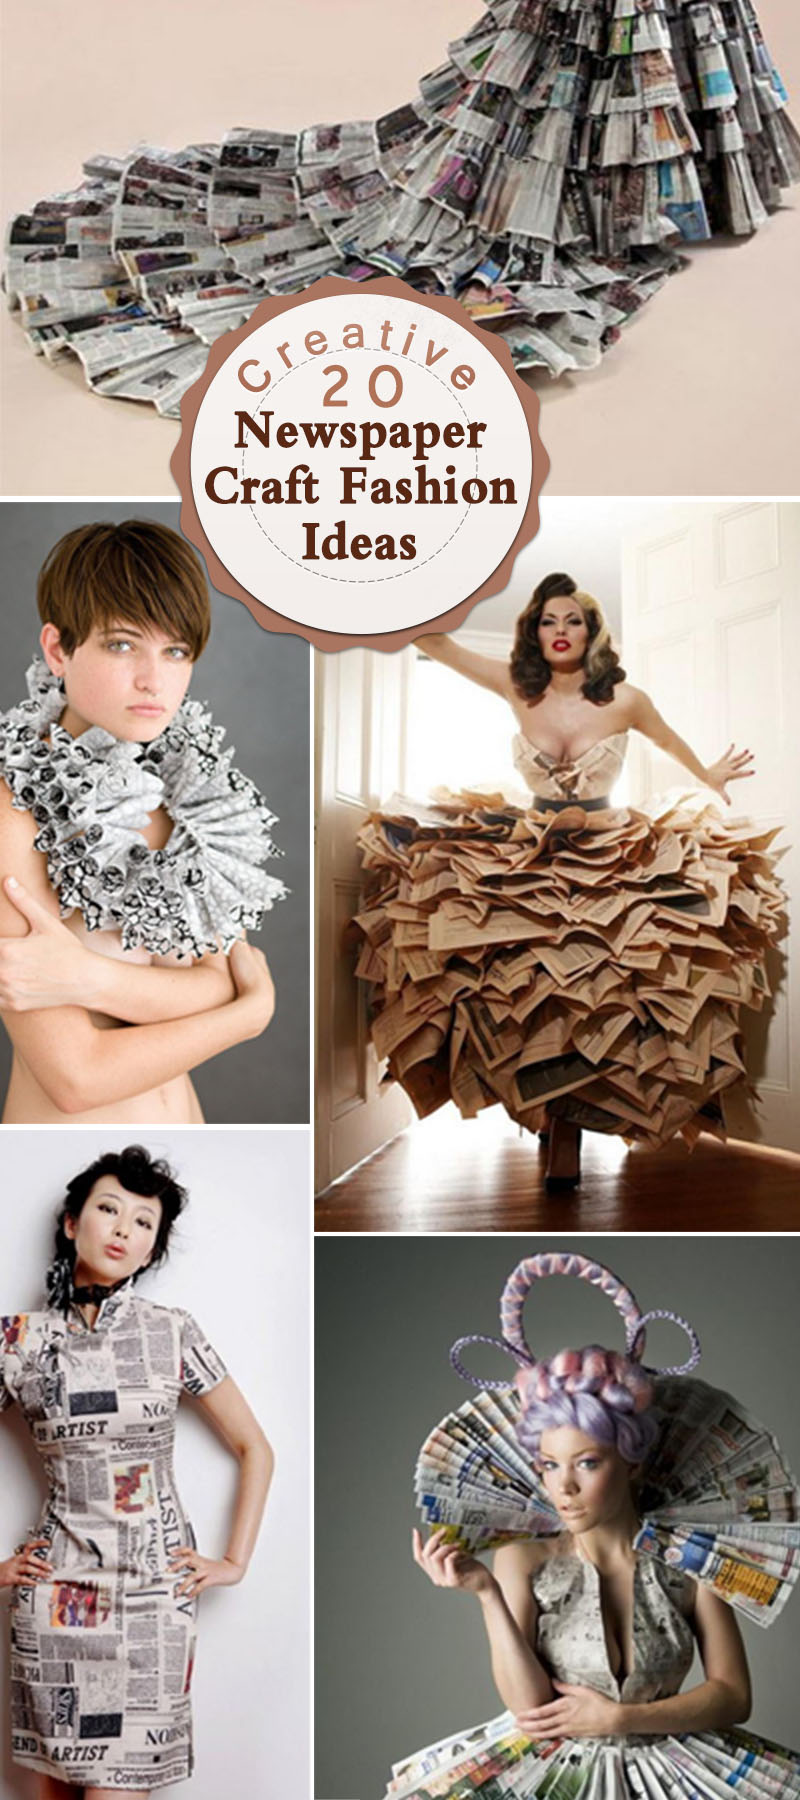 Creative Newspaper Craft Fashion Ideas!